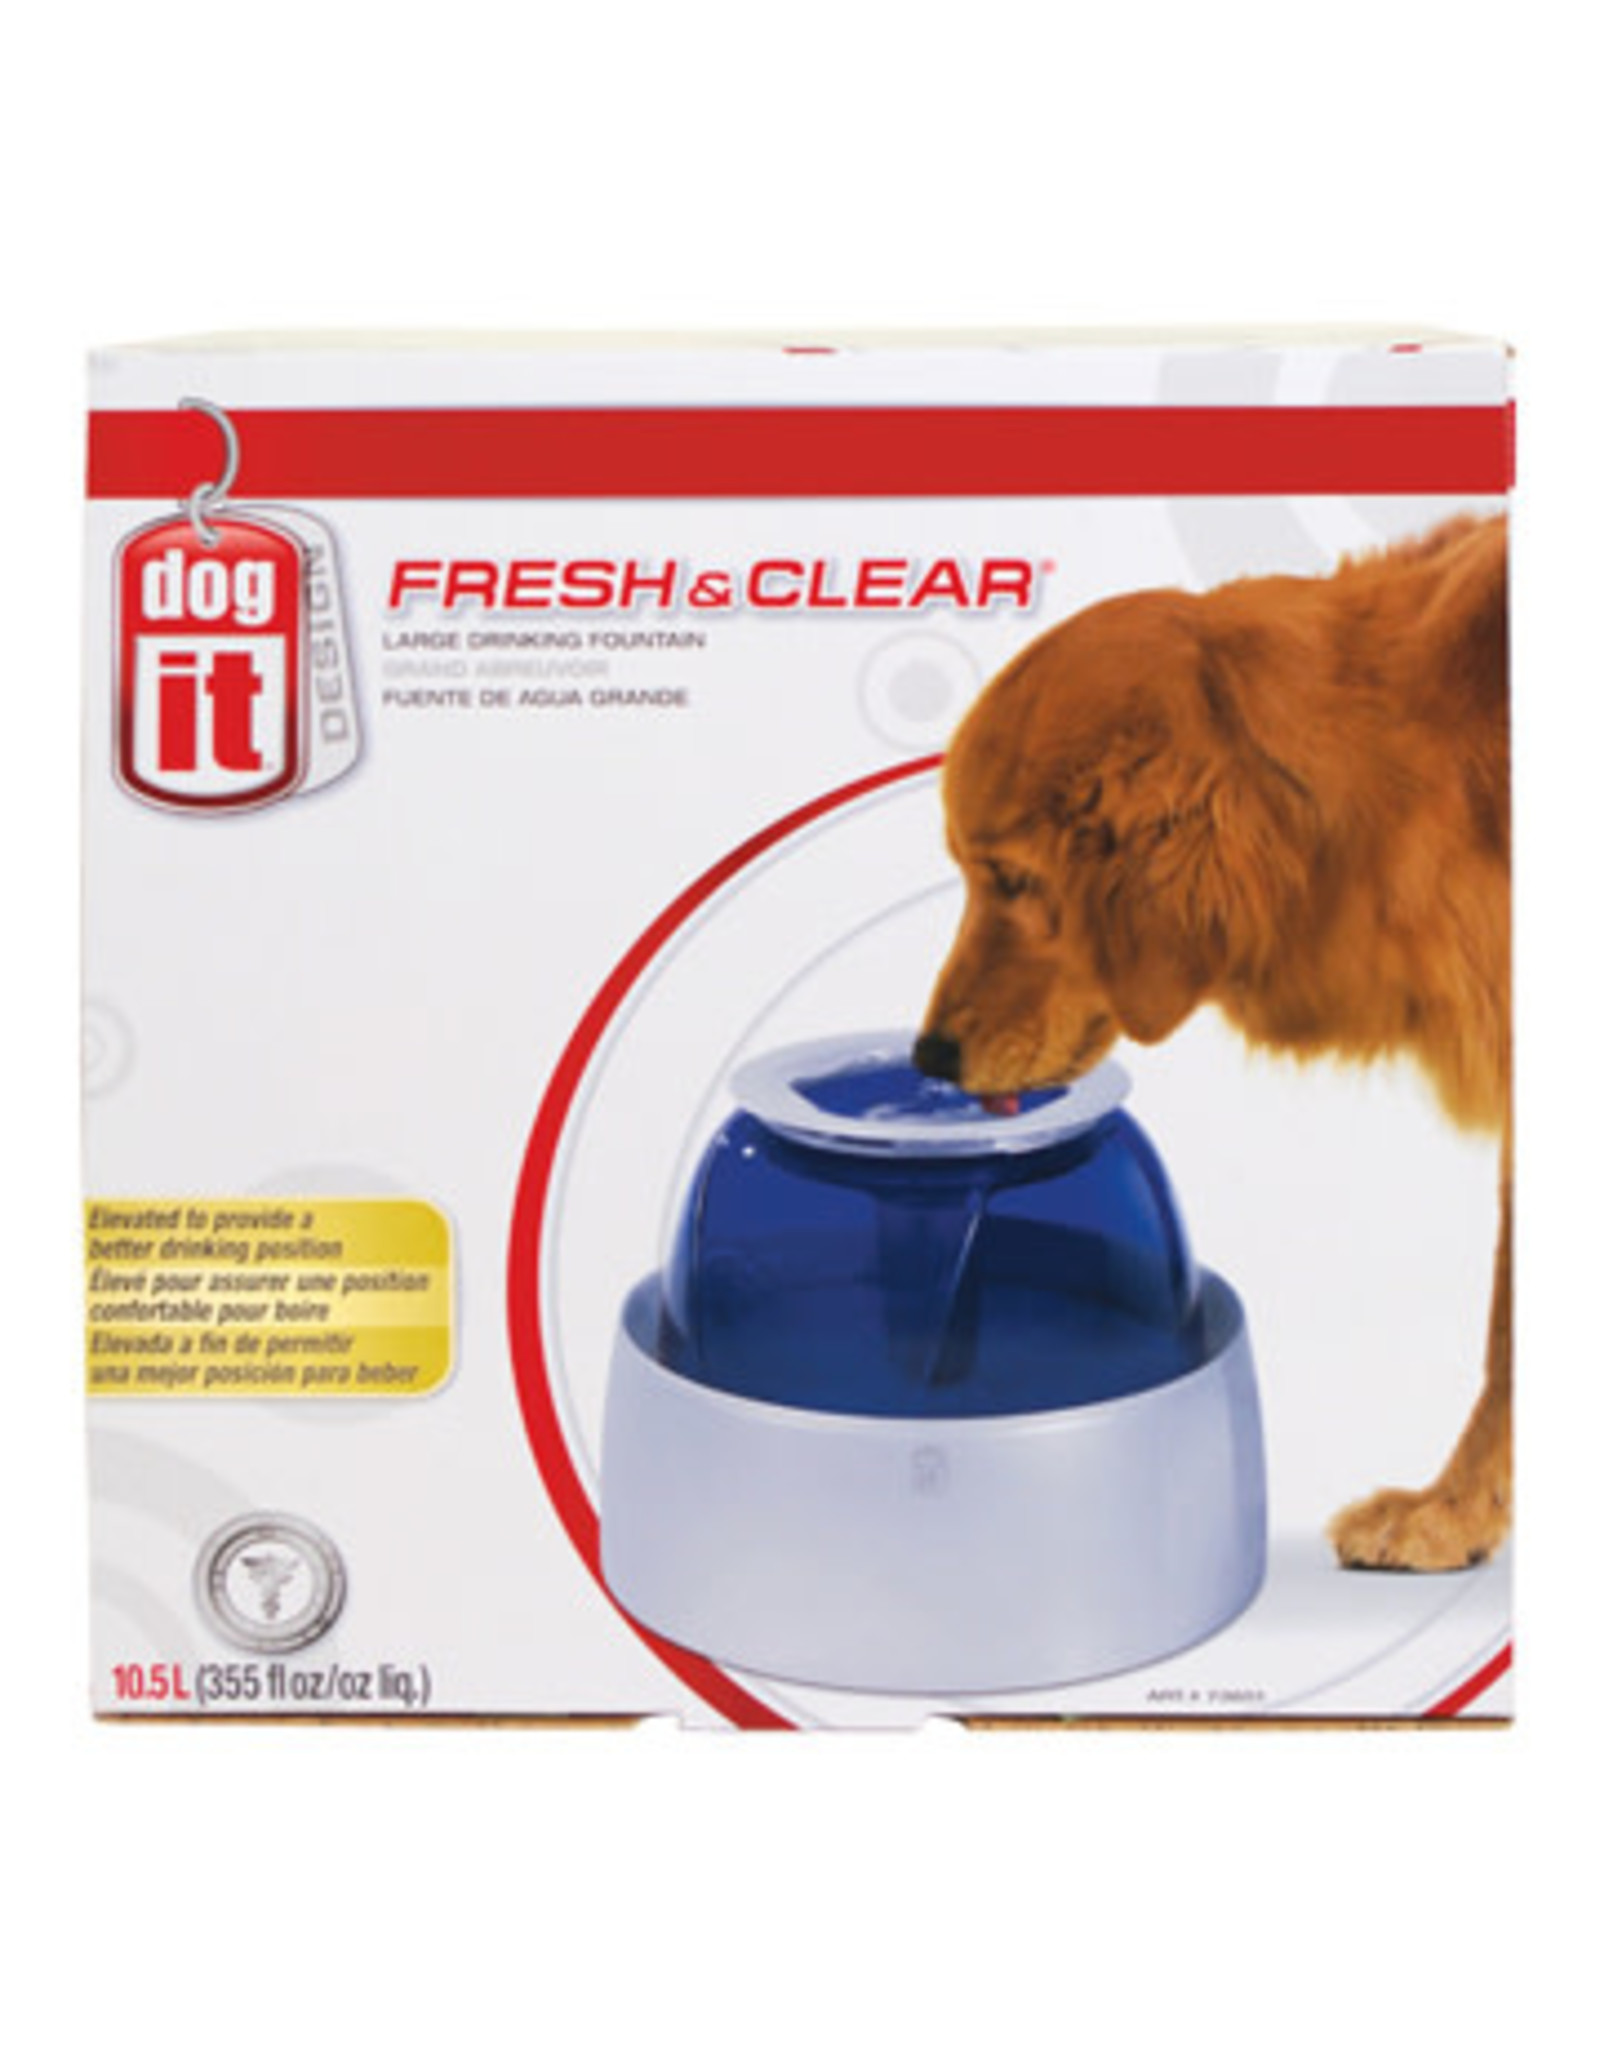 DogIt Fresh & Clear Large Dog Drinking Fountain 10.5L